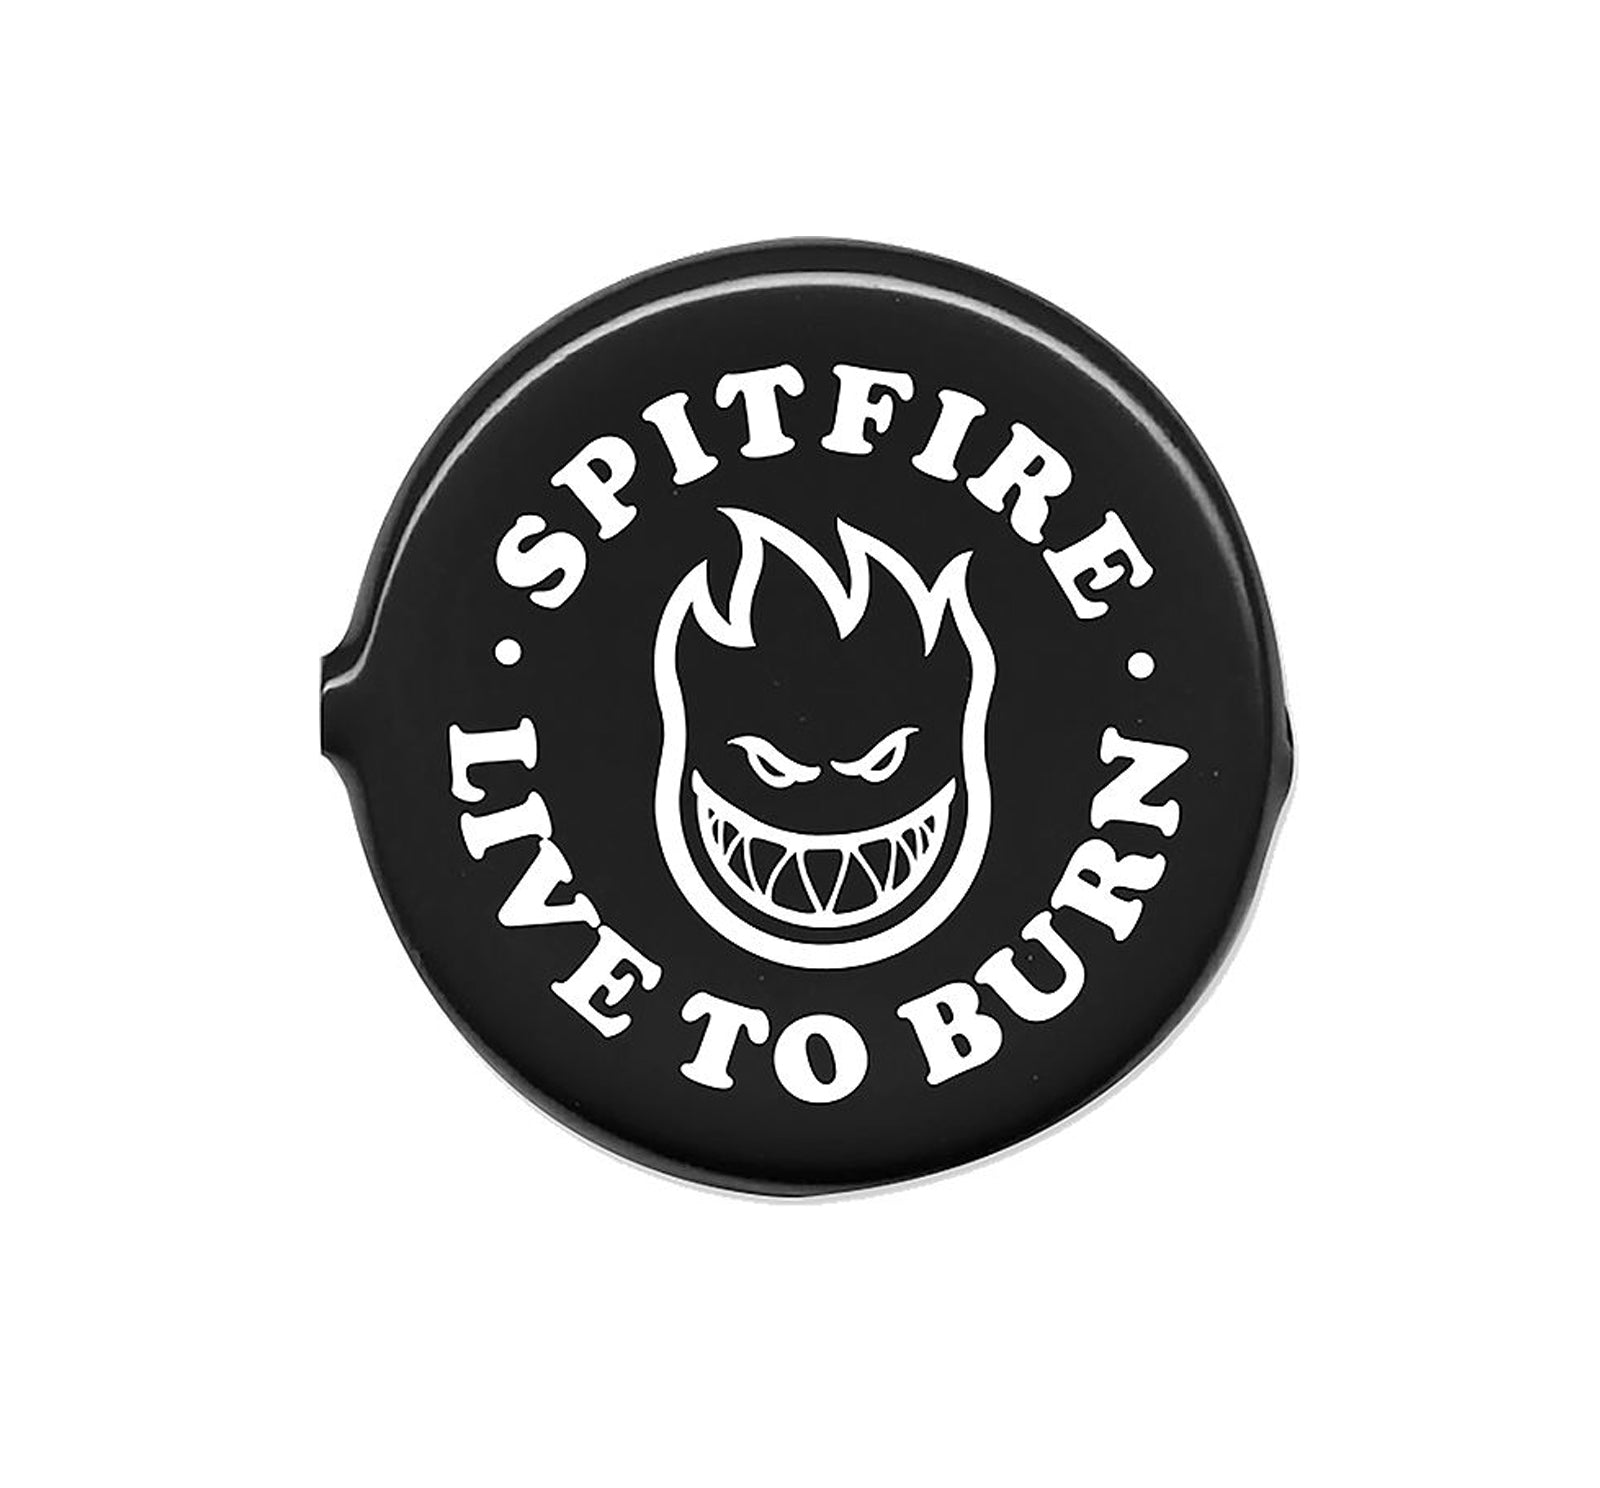 Spitfire Live To Burn Coin Pouch - Black